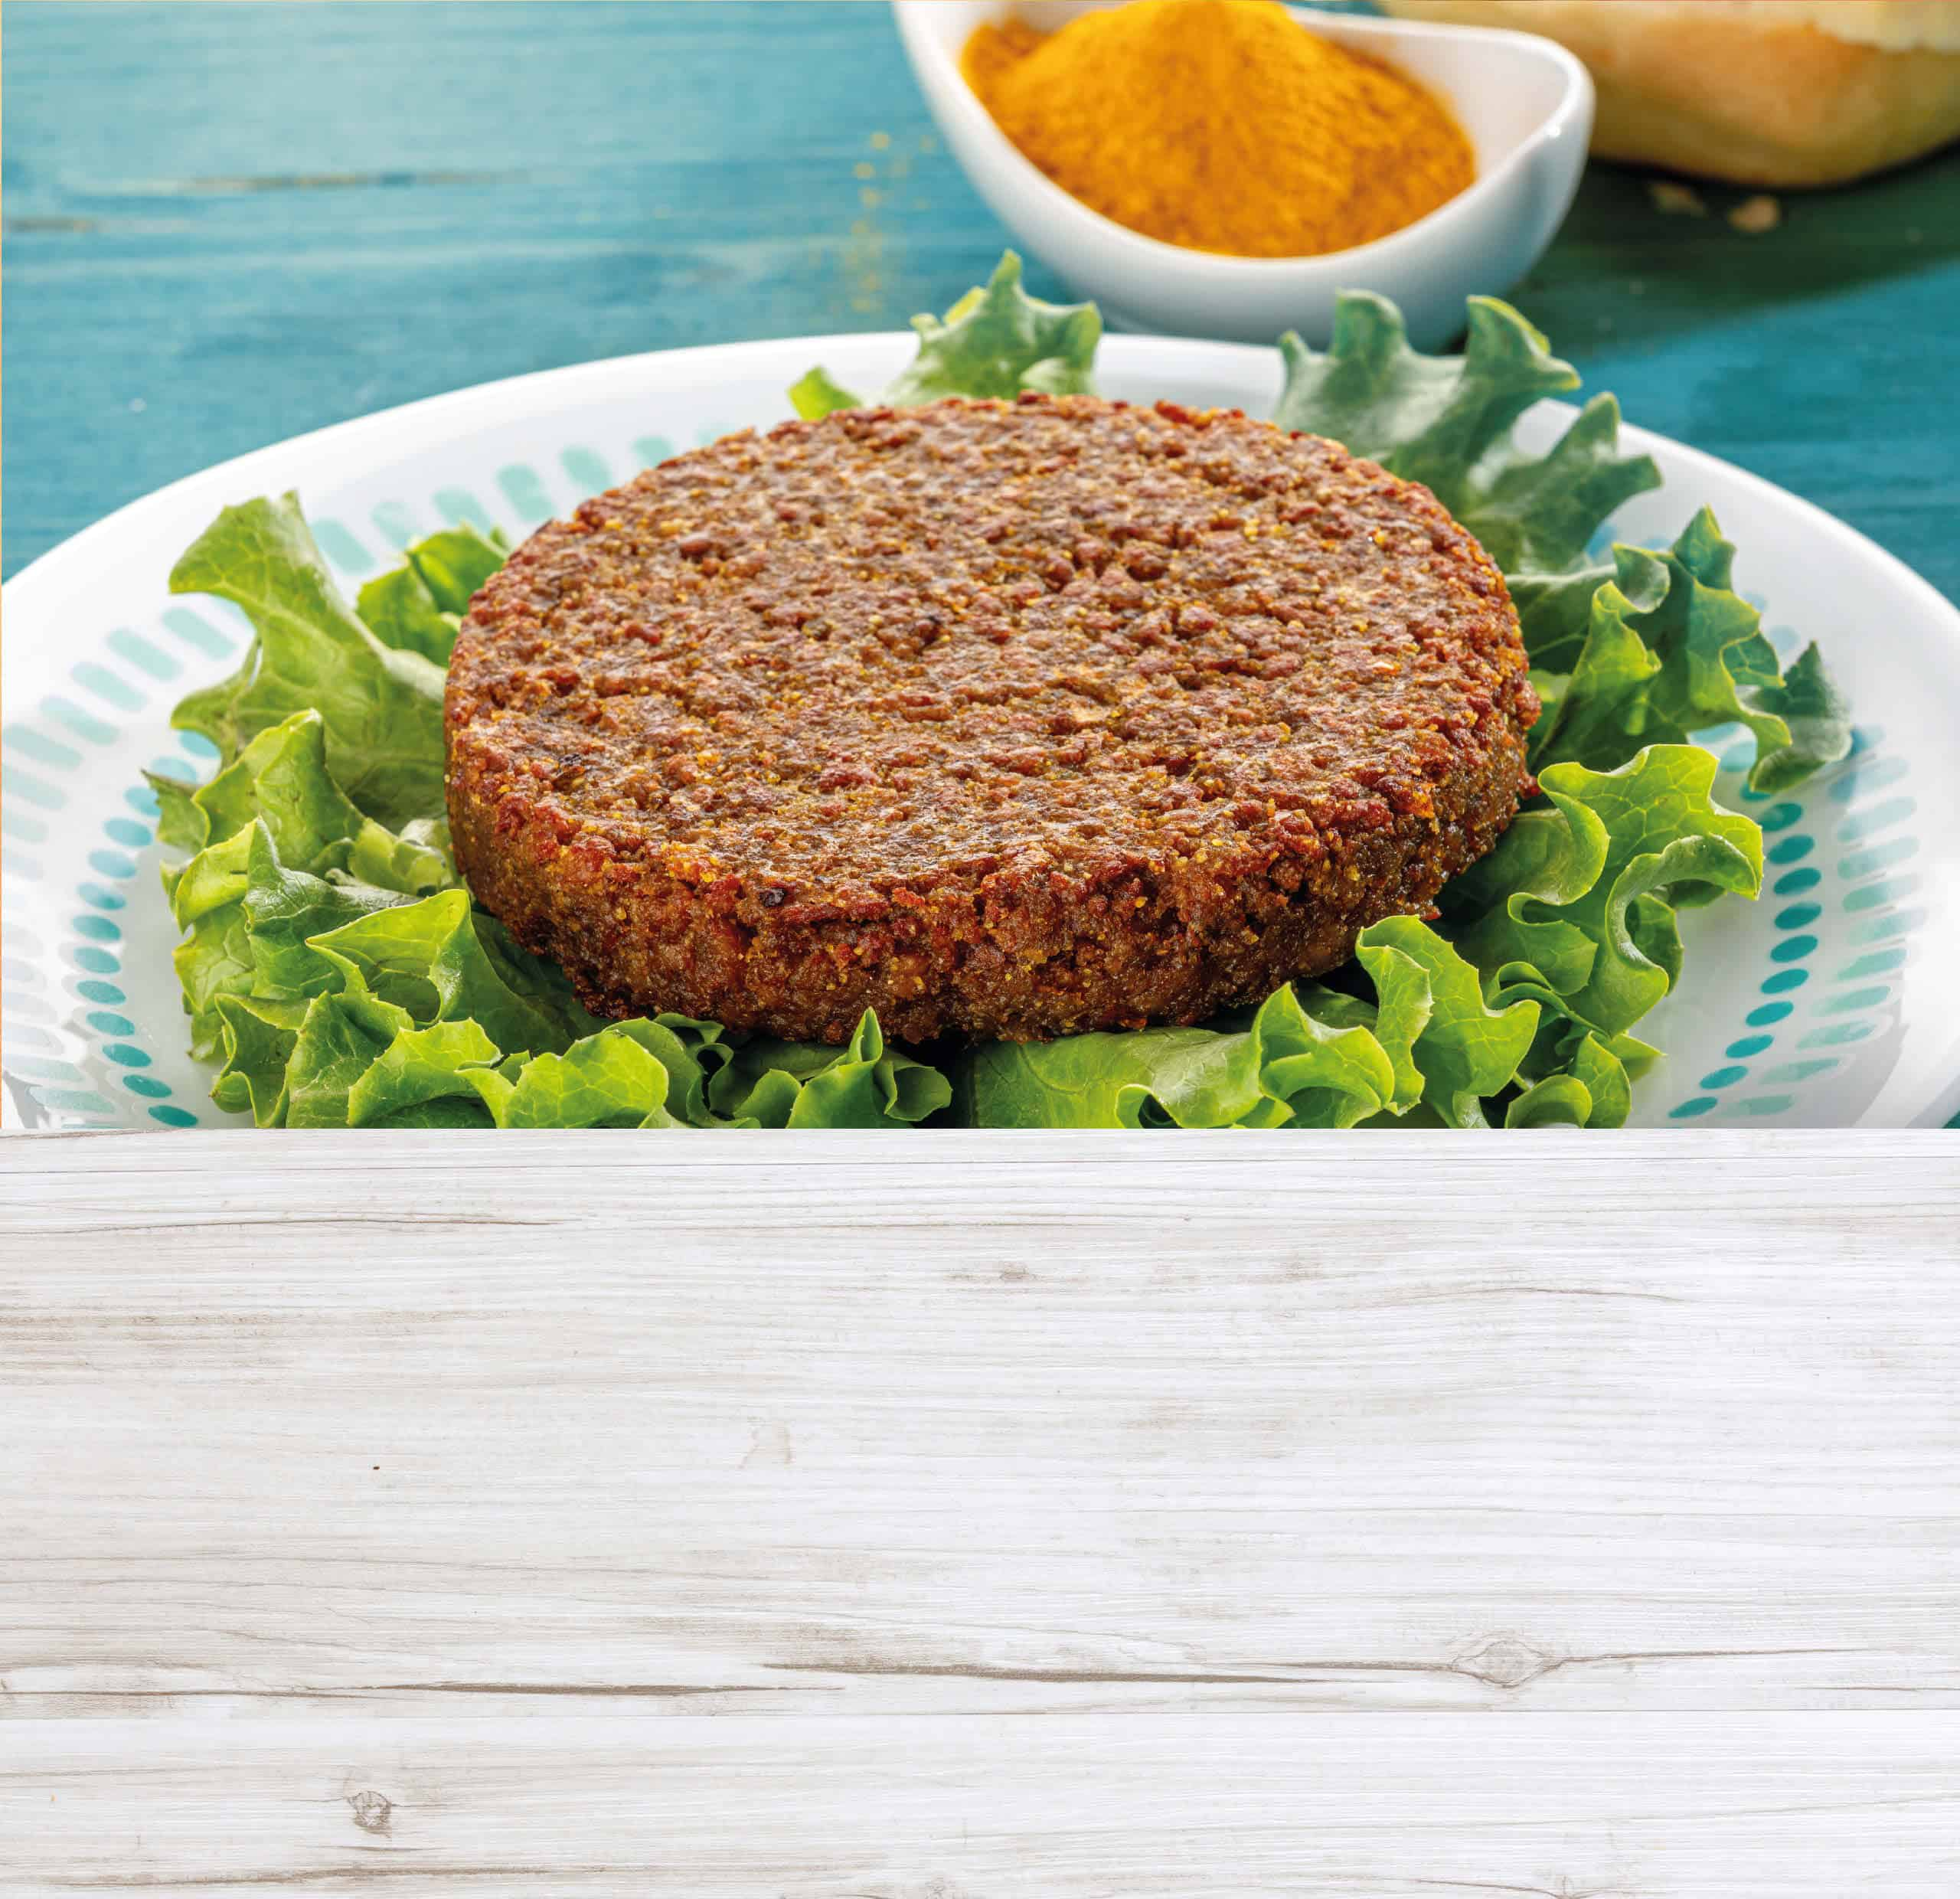 Burger alla curcuma Agreat